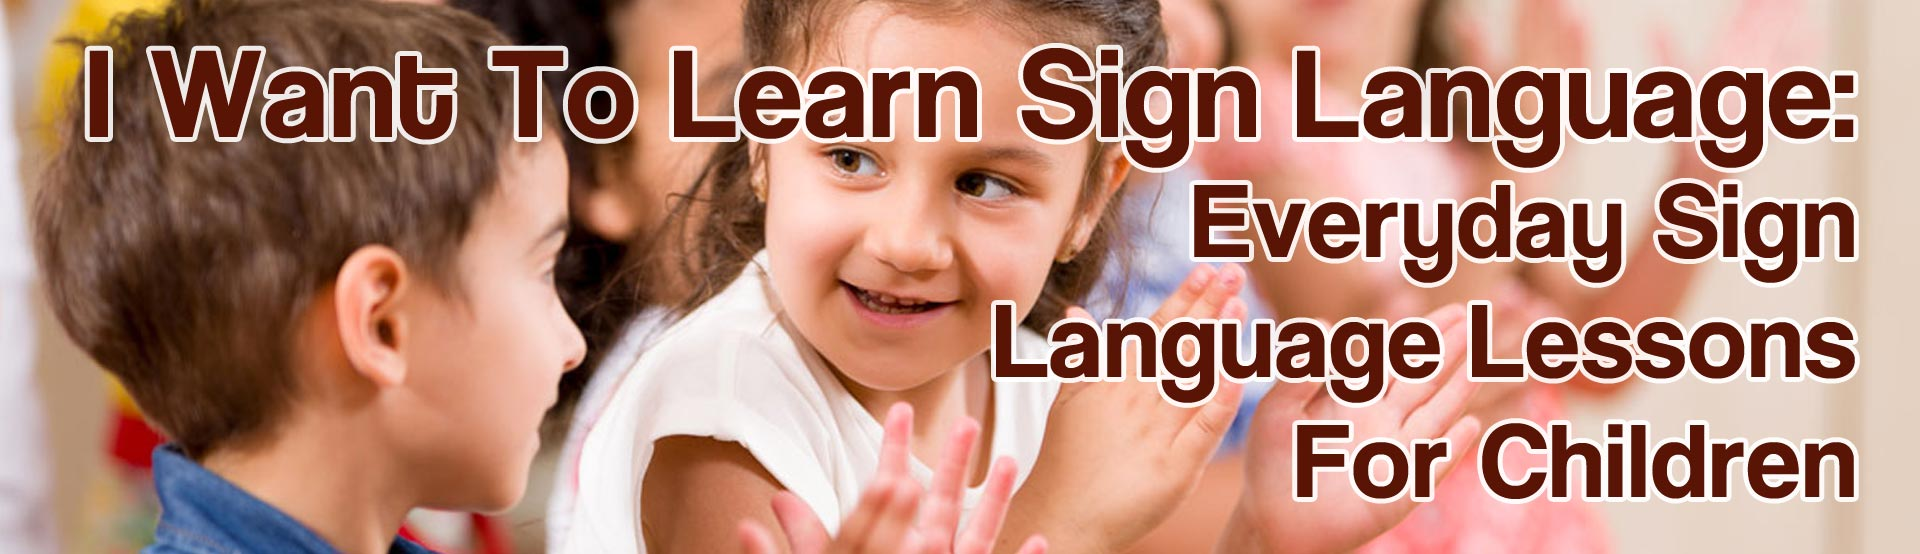 I Want To Learn Sign Language: Everyday Sign Language Lessons For Children